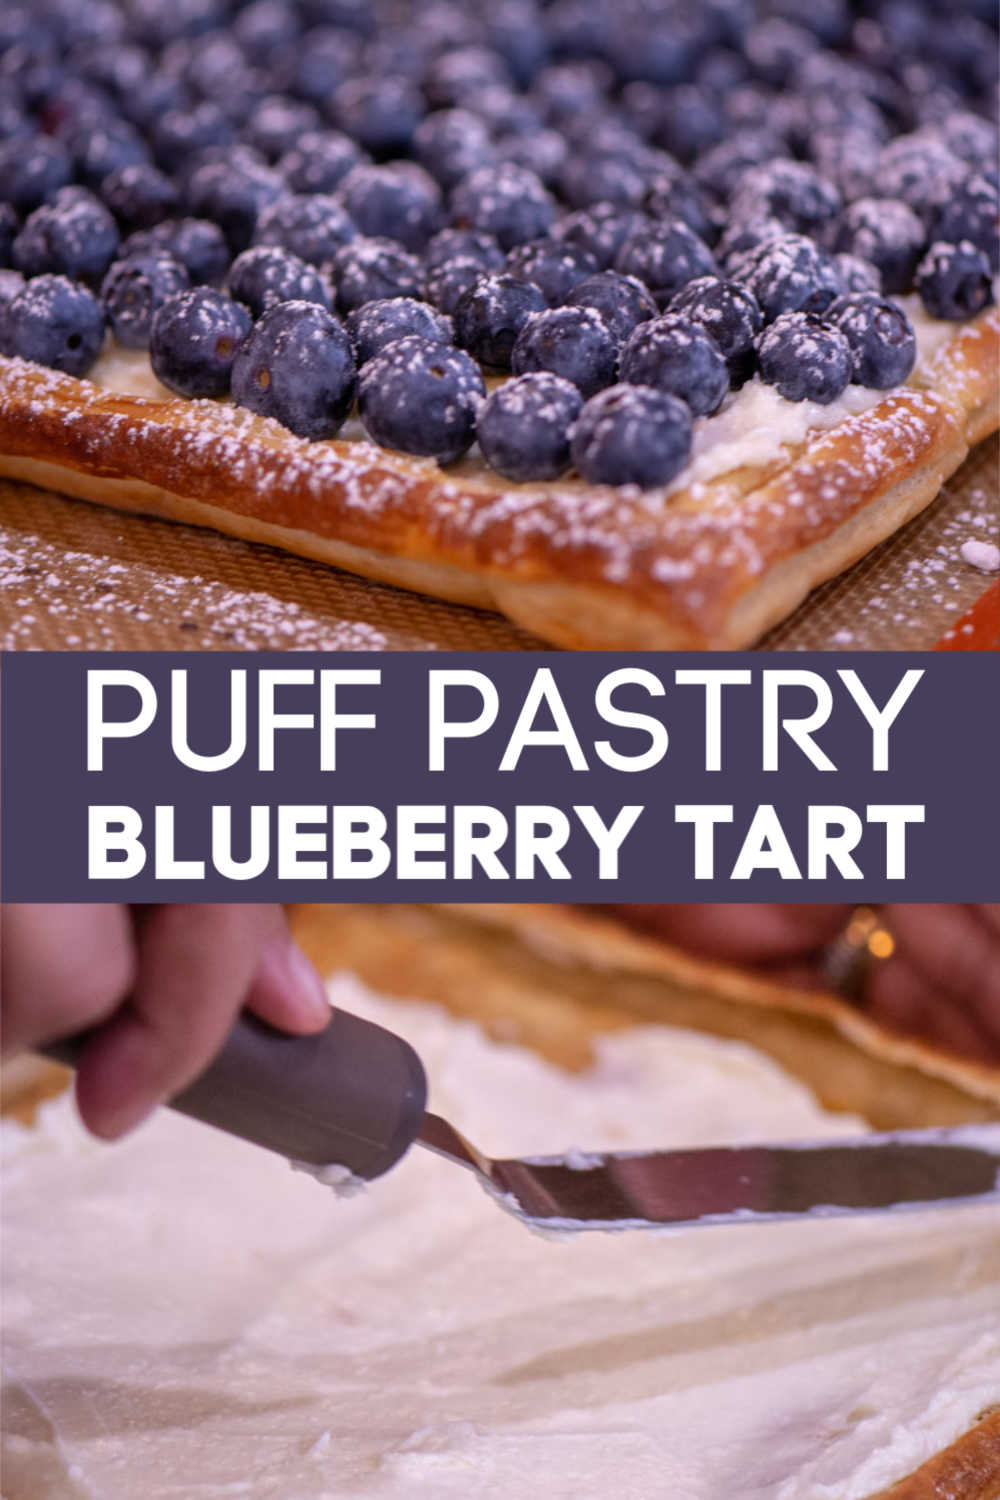 Puff Pastry Blueberry Tart is a fun and refreshing dessert that tastes as good as it looks! #blueberries #puffpastry #dessert